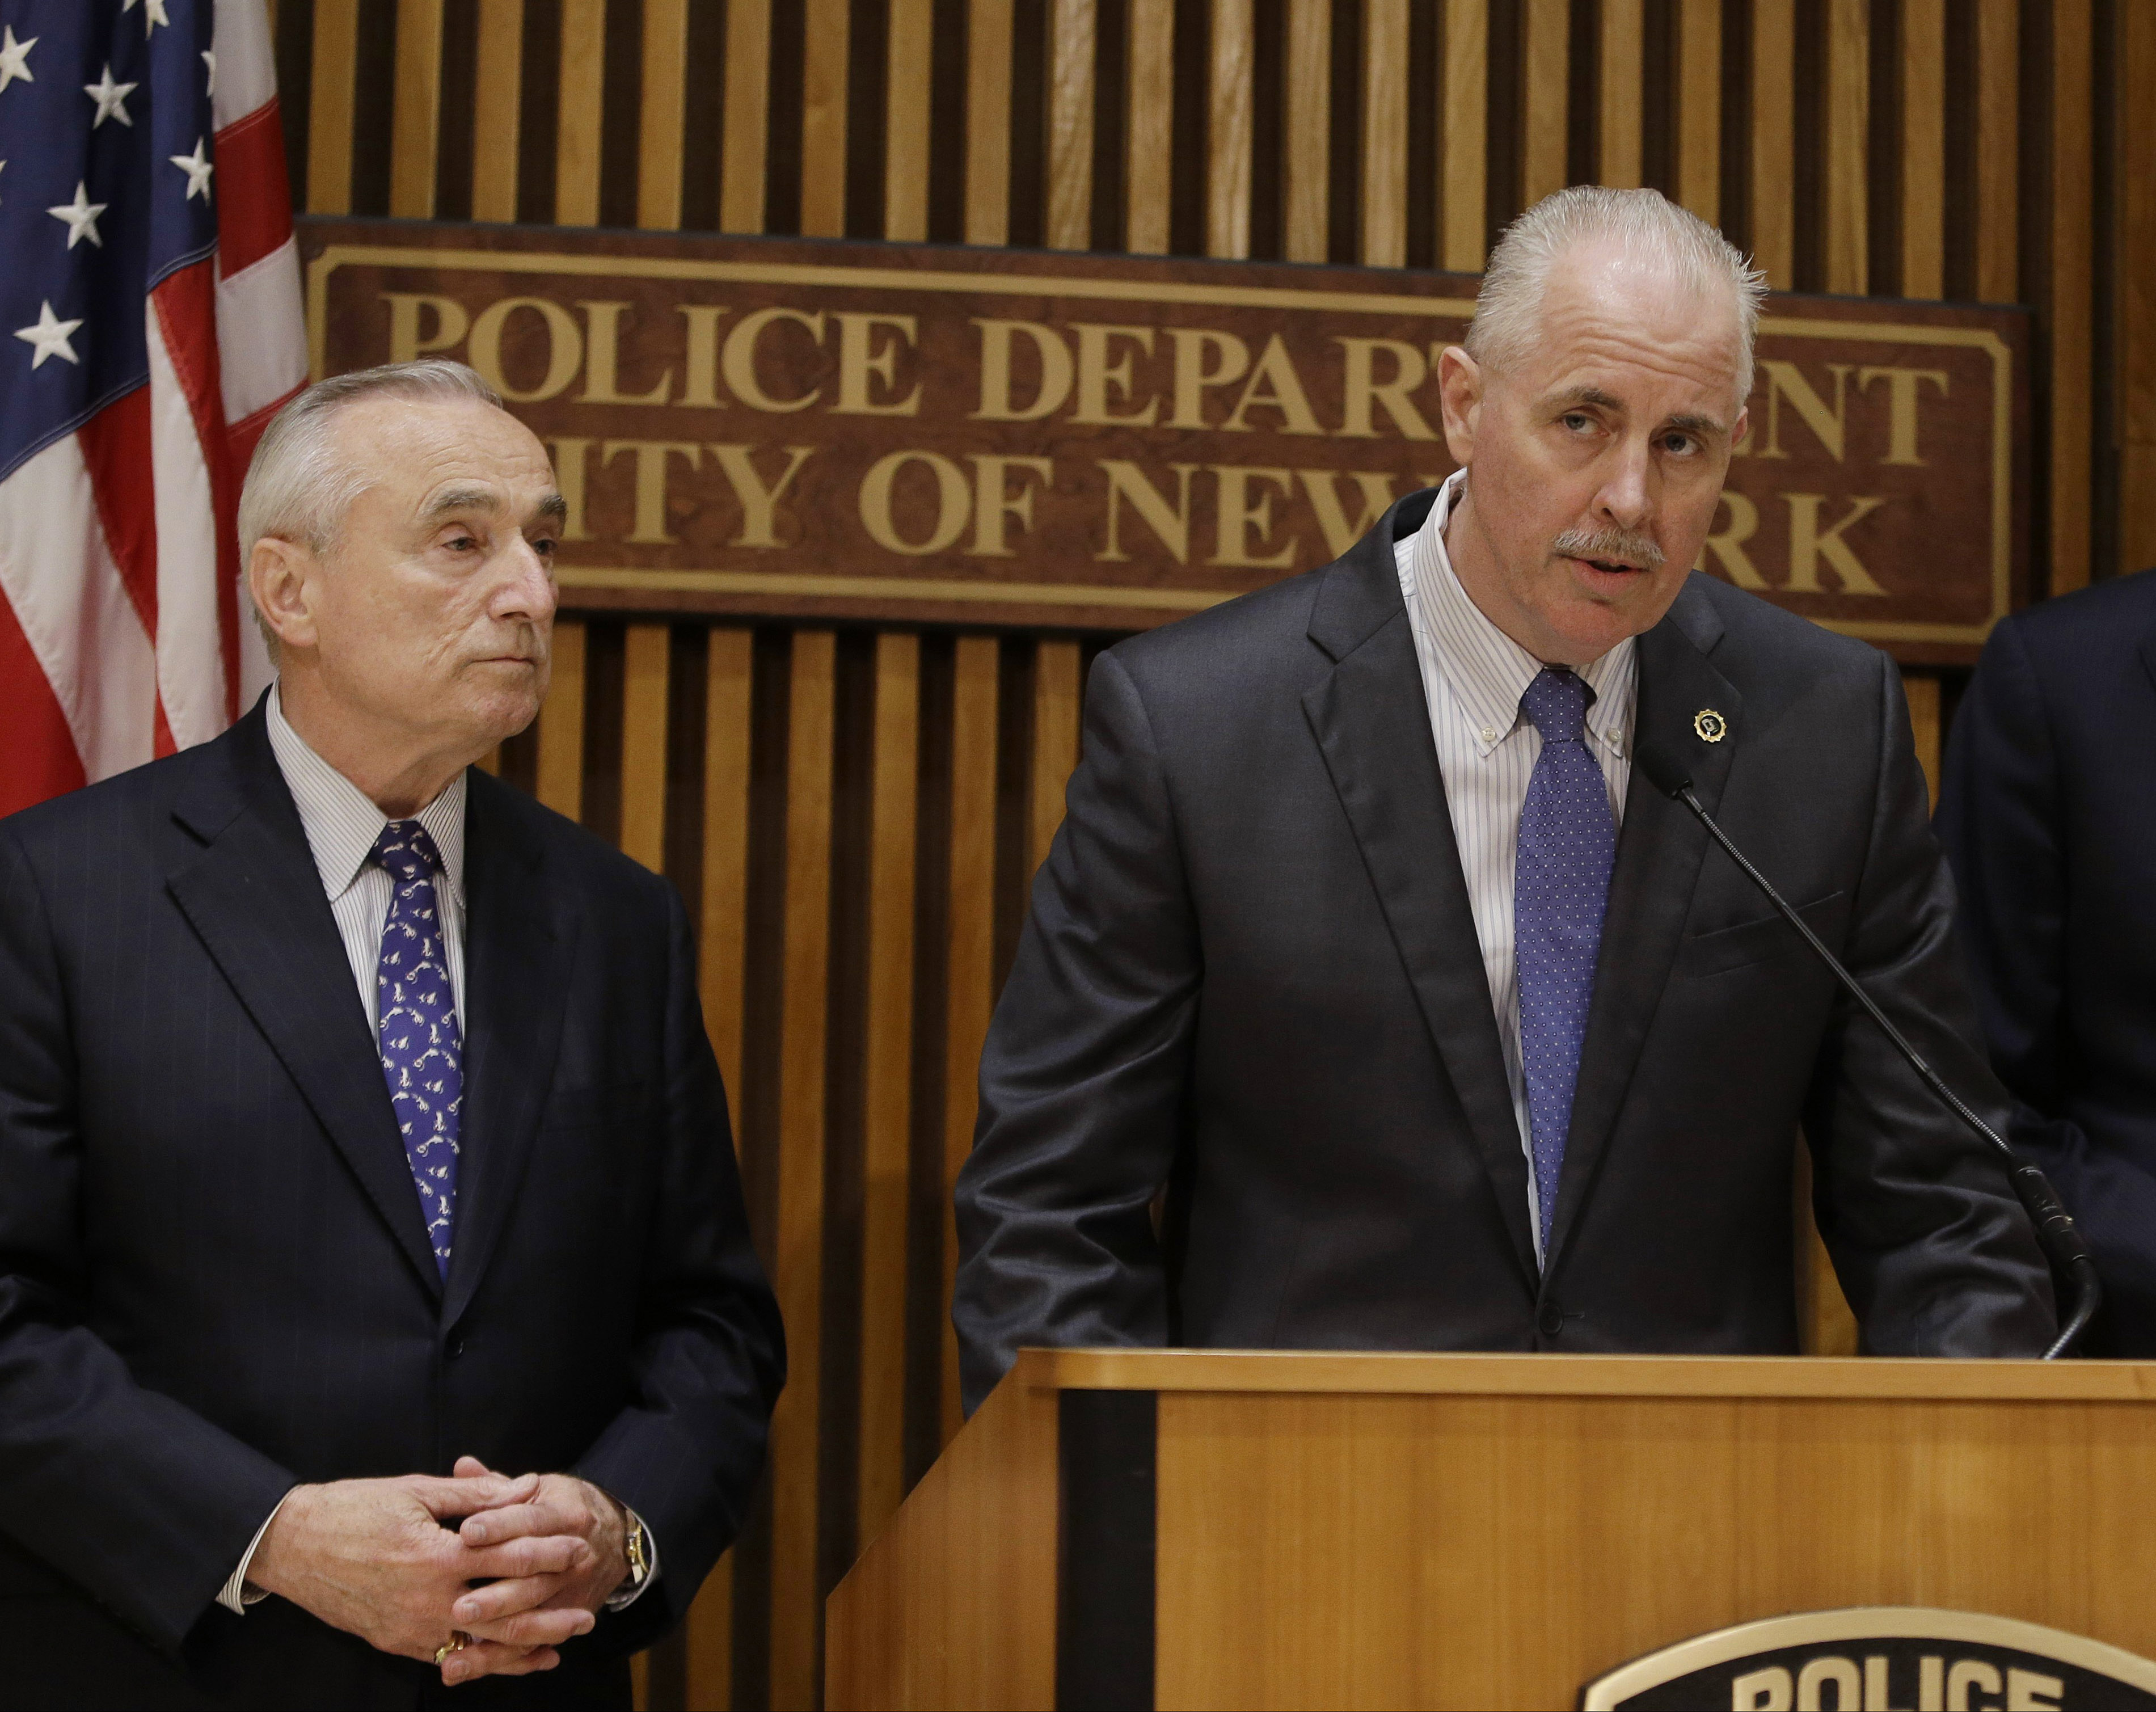 New York Police Chief of Detectives Robert Boyce speaks to the media as Police Commissioner William J. Bratton (l) looks on, in New York, on June 4, 2014. Although outlaw street gangs are engaging in more of a white-collar variety of crime, they are not shifting away from violence. In an interview with The Associated Press, Boyce recently said that,